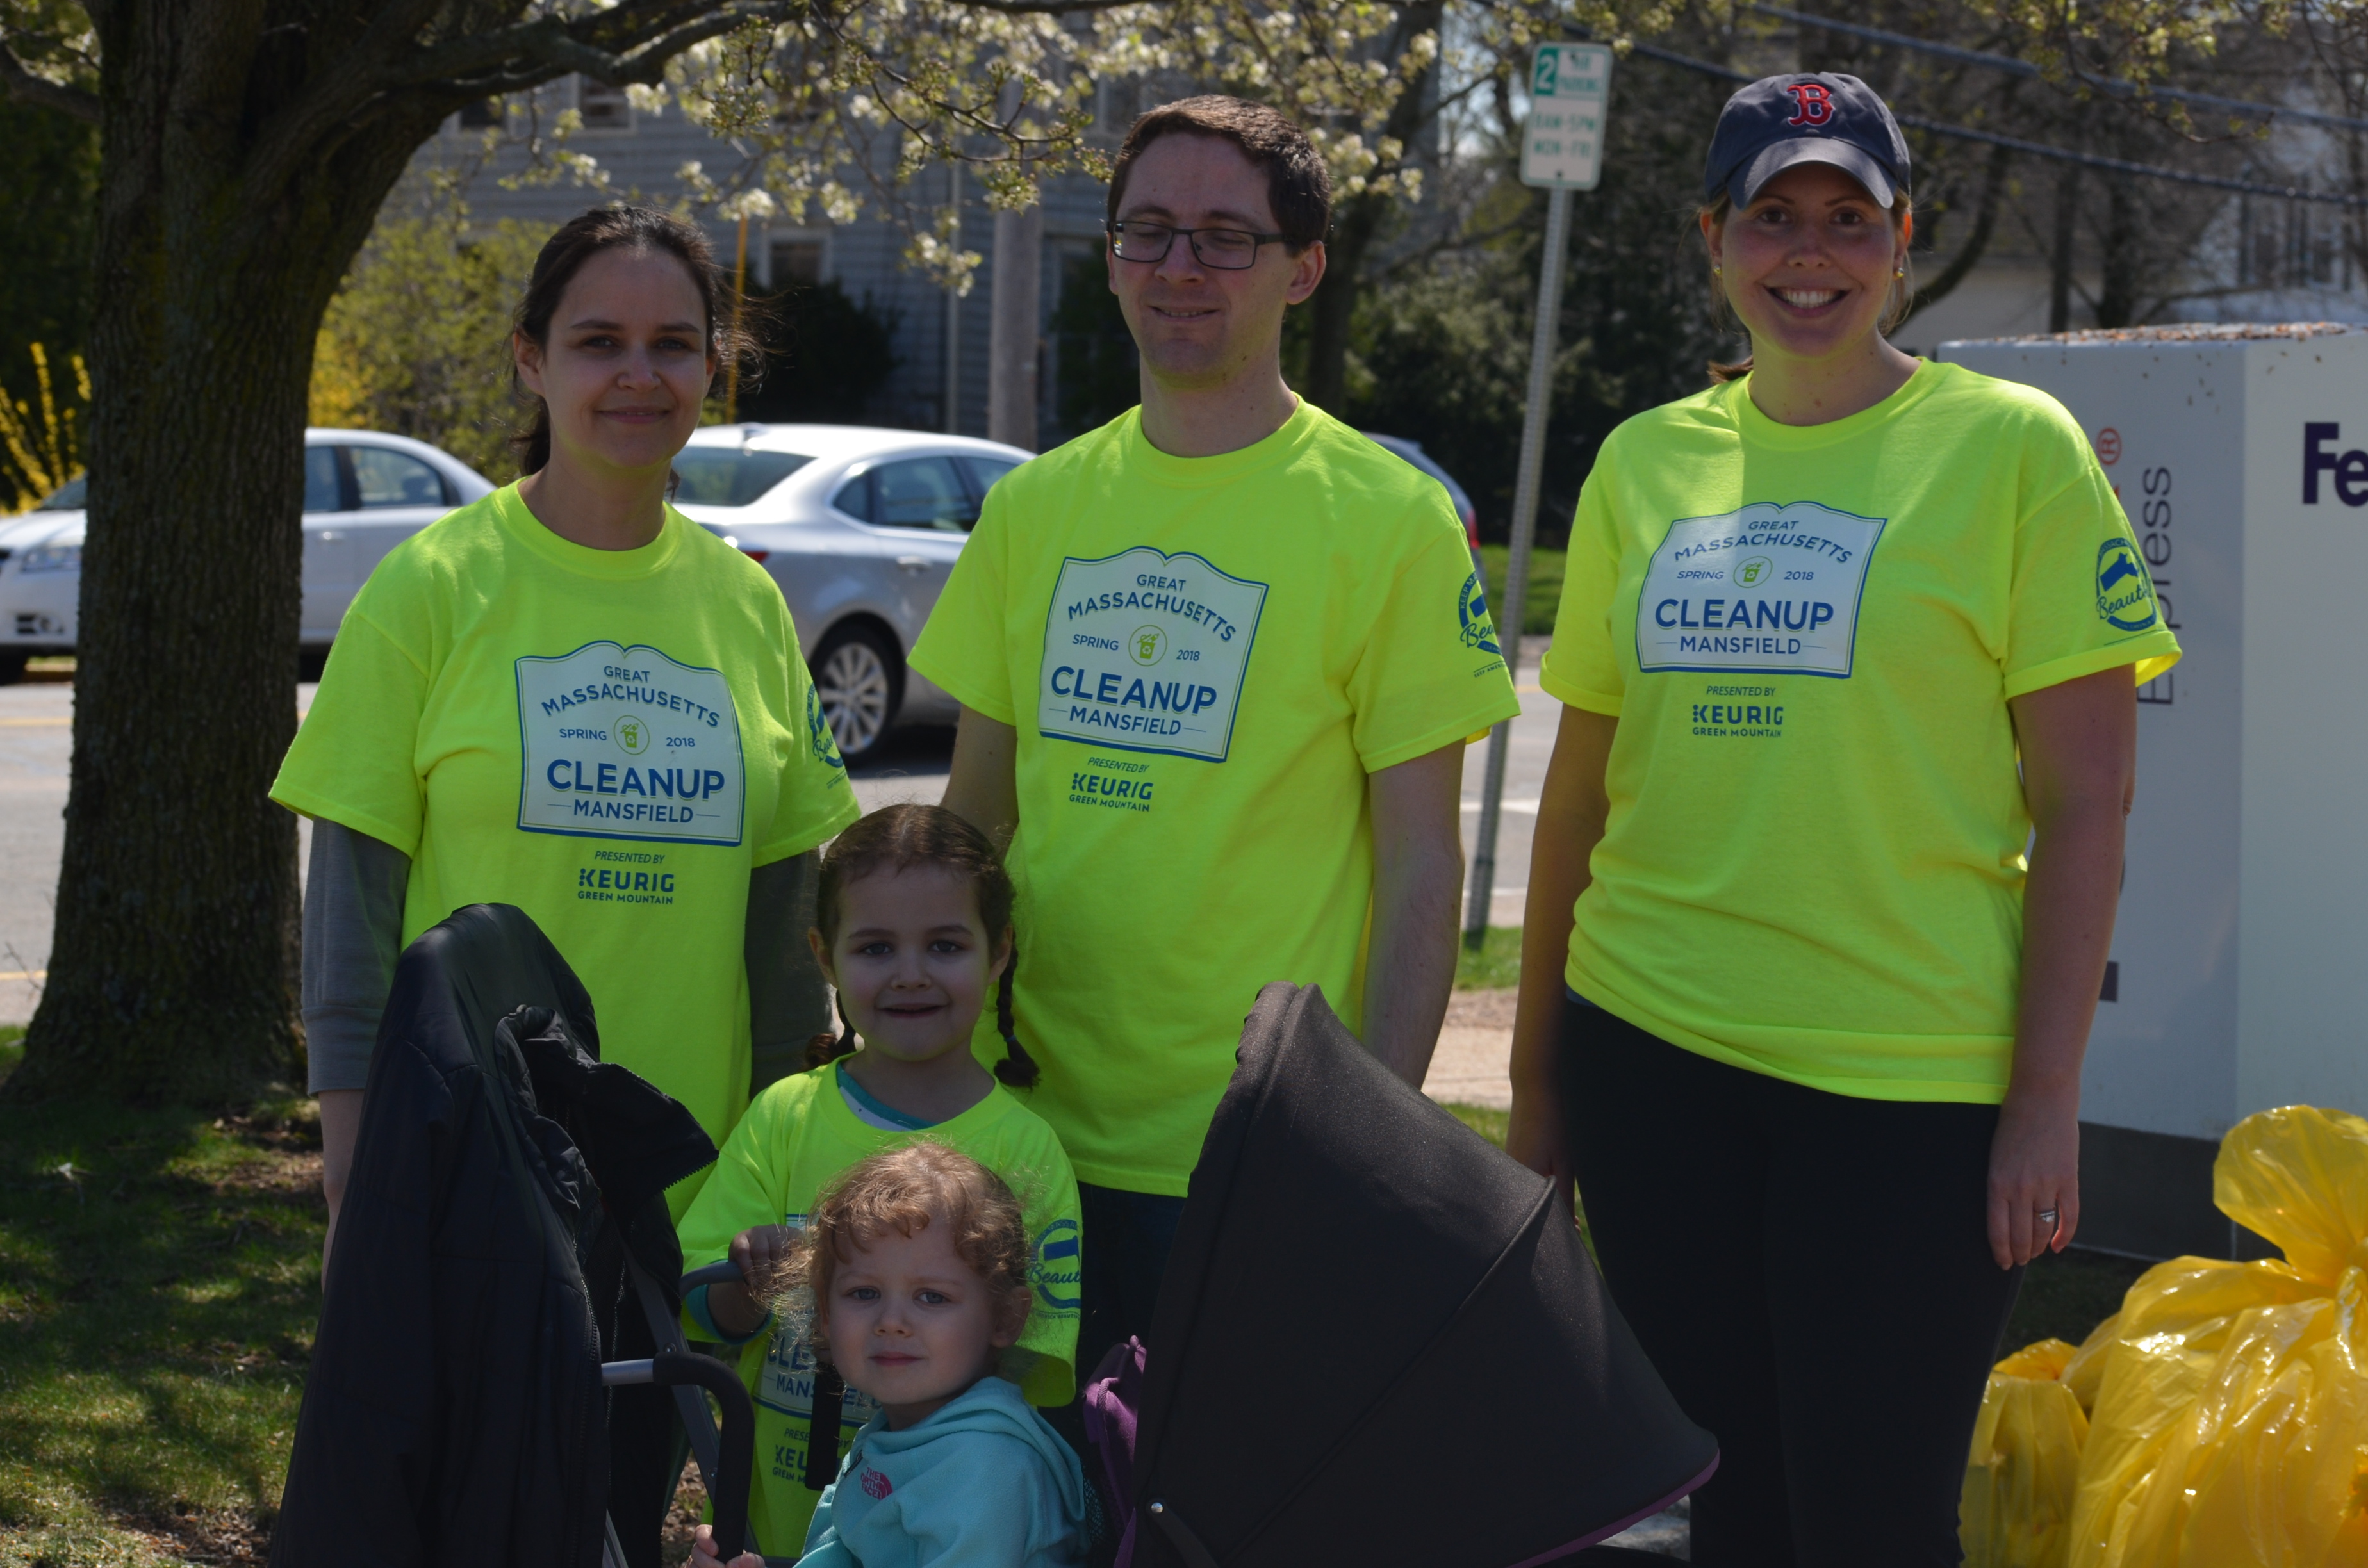 Great Mansfield Cleanup